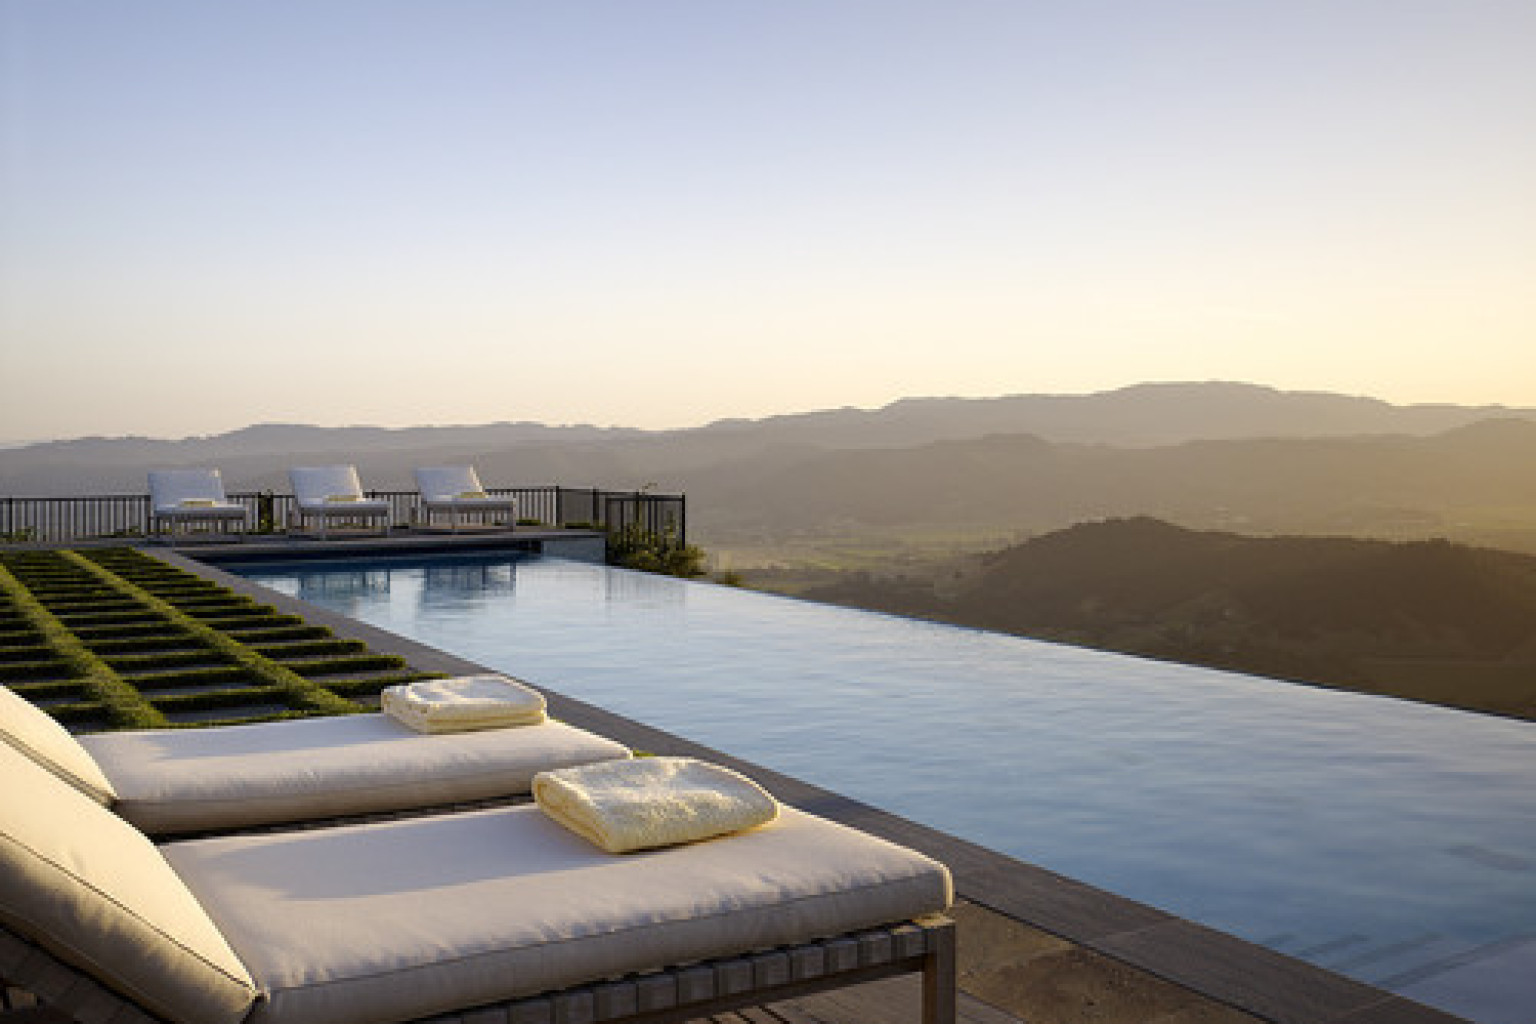 10 Infinity Pools That Will Make You Want To Swim... Forever (PHOTOS) |  HuffPost